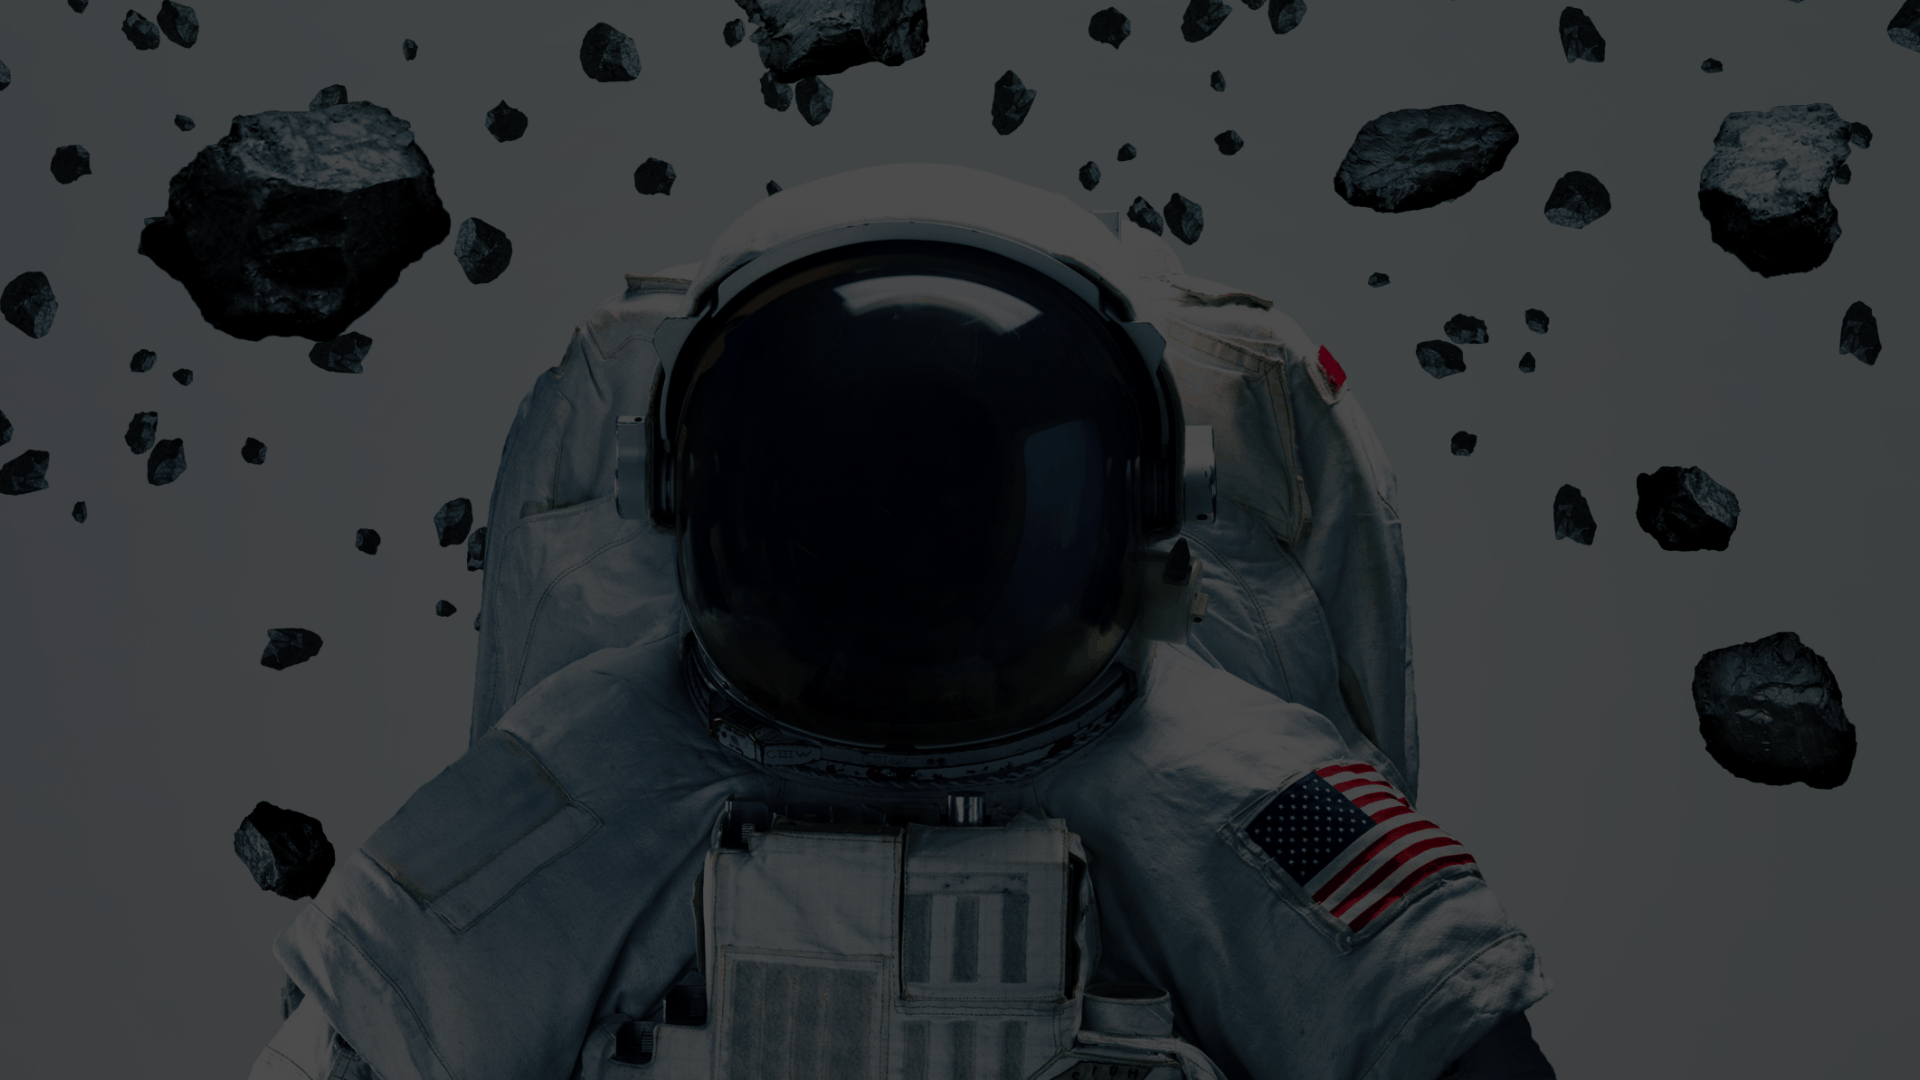 Background Astronaut